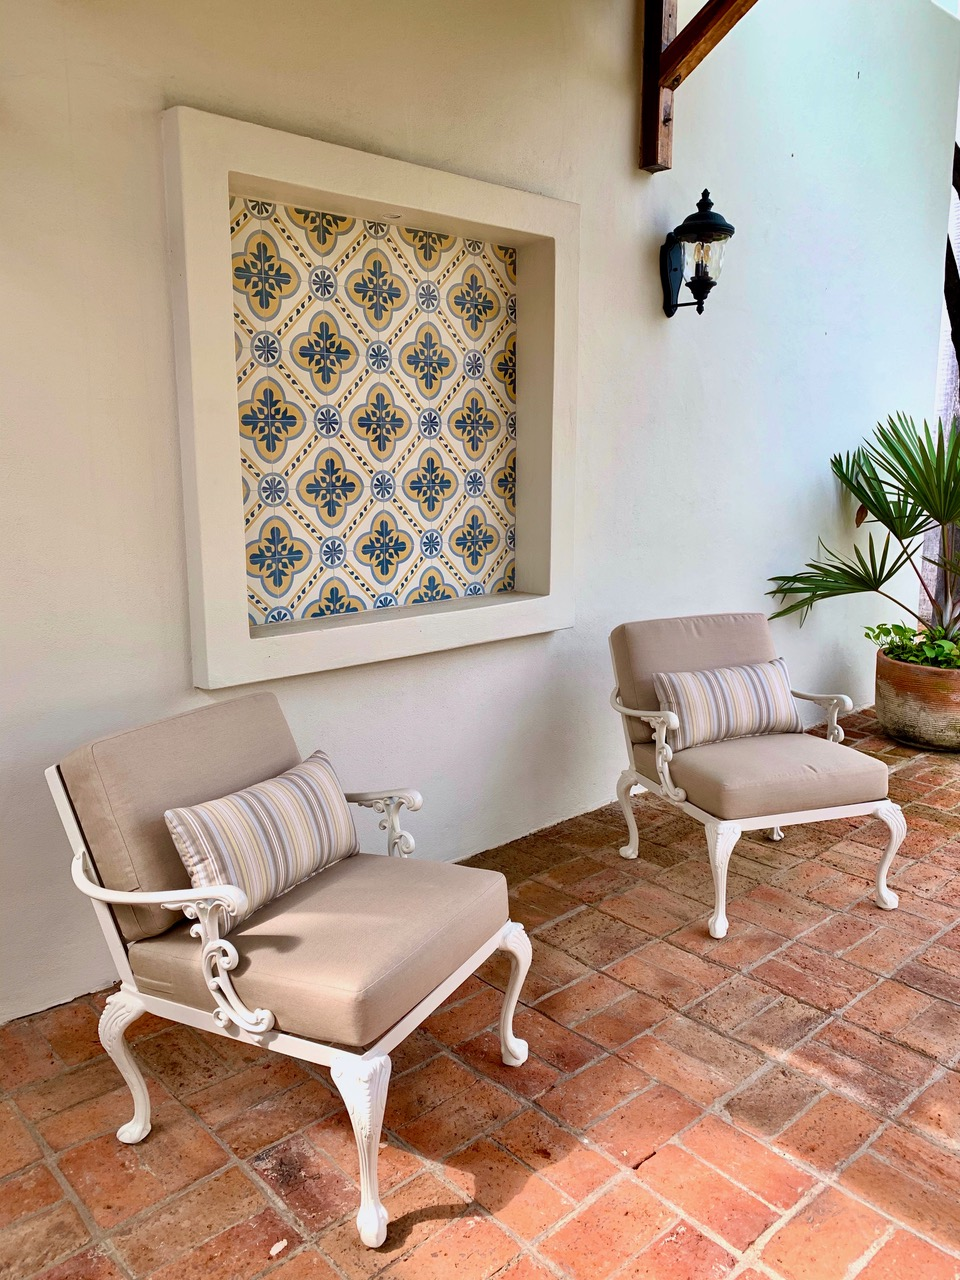 Covered patio seating next to the casita.